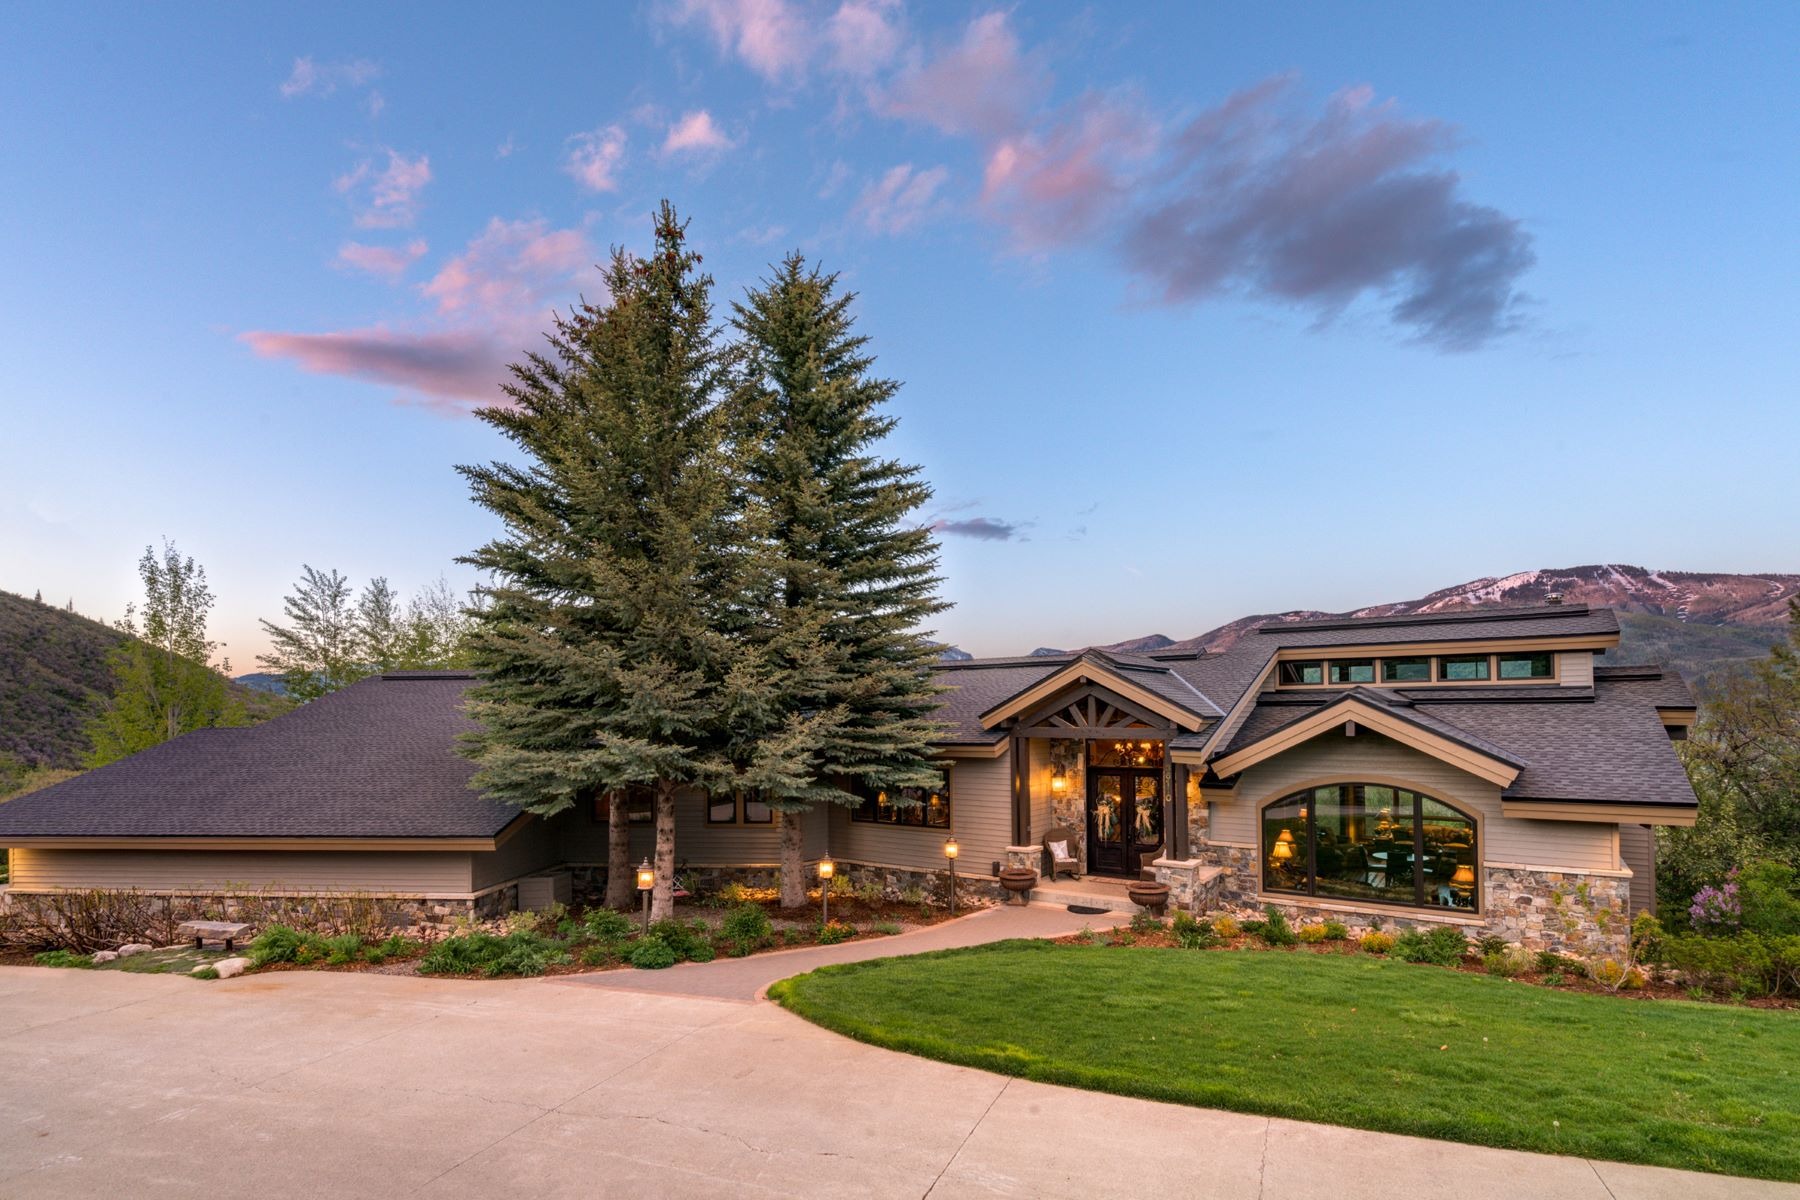 Single Family Home for Sale at ENVIABLE VIEWS & ULTIMATE LUXURY 36110 Quarry Ridge Rd. Steamboat Springs, Colorado 80487 United States